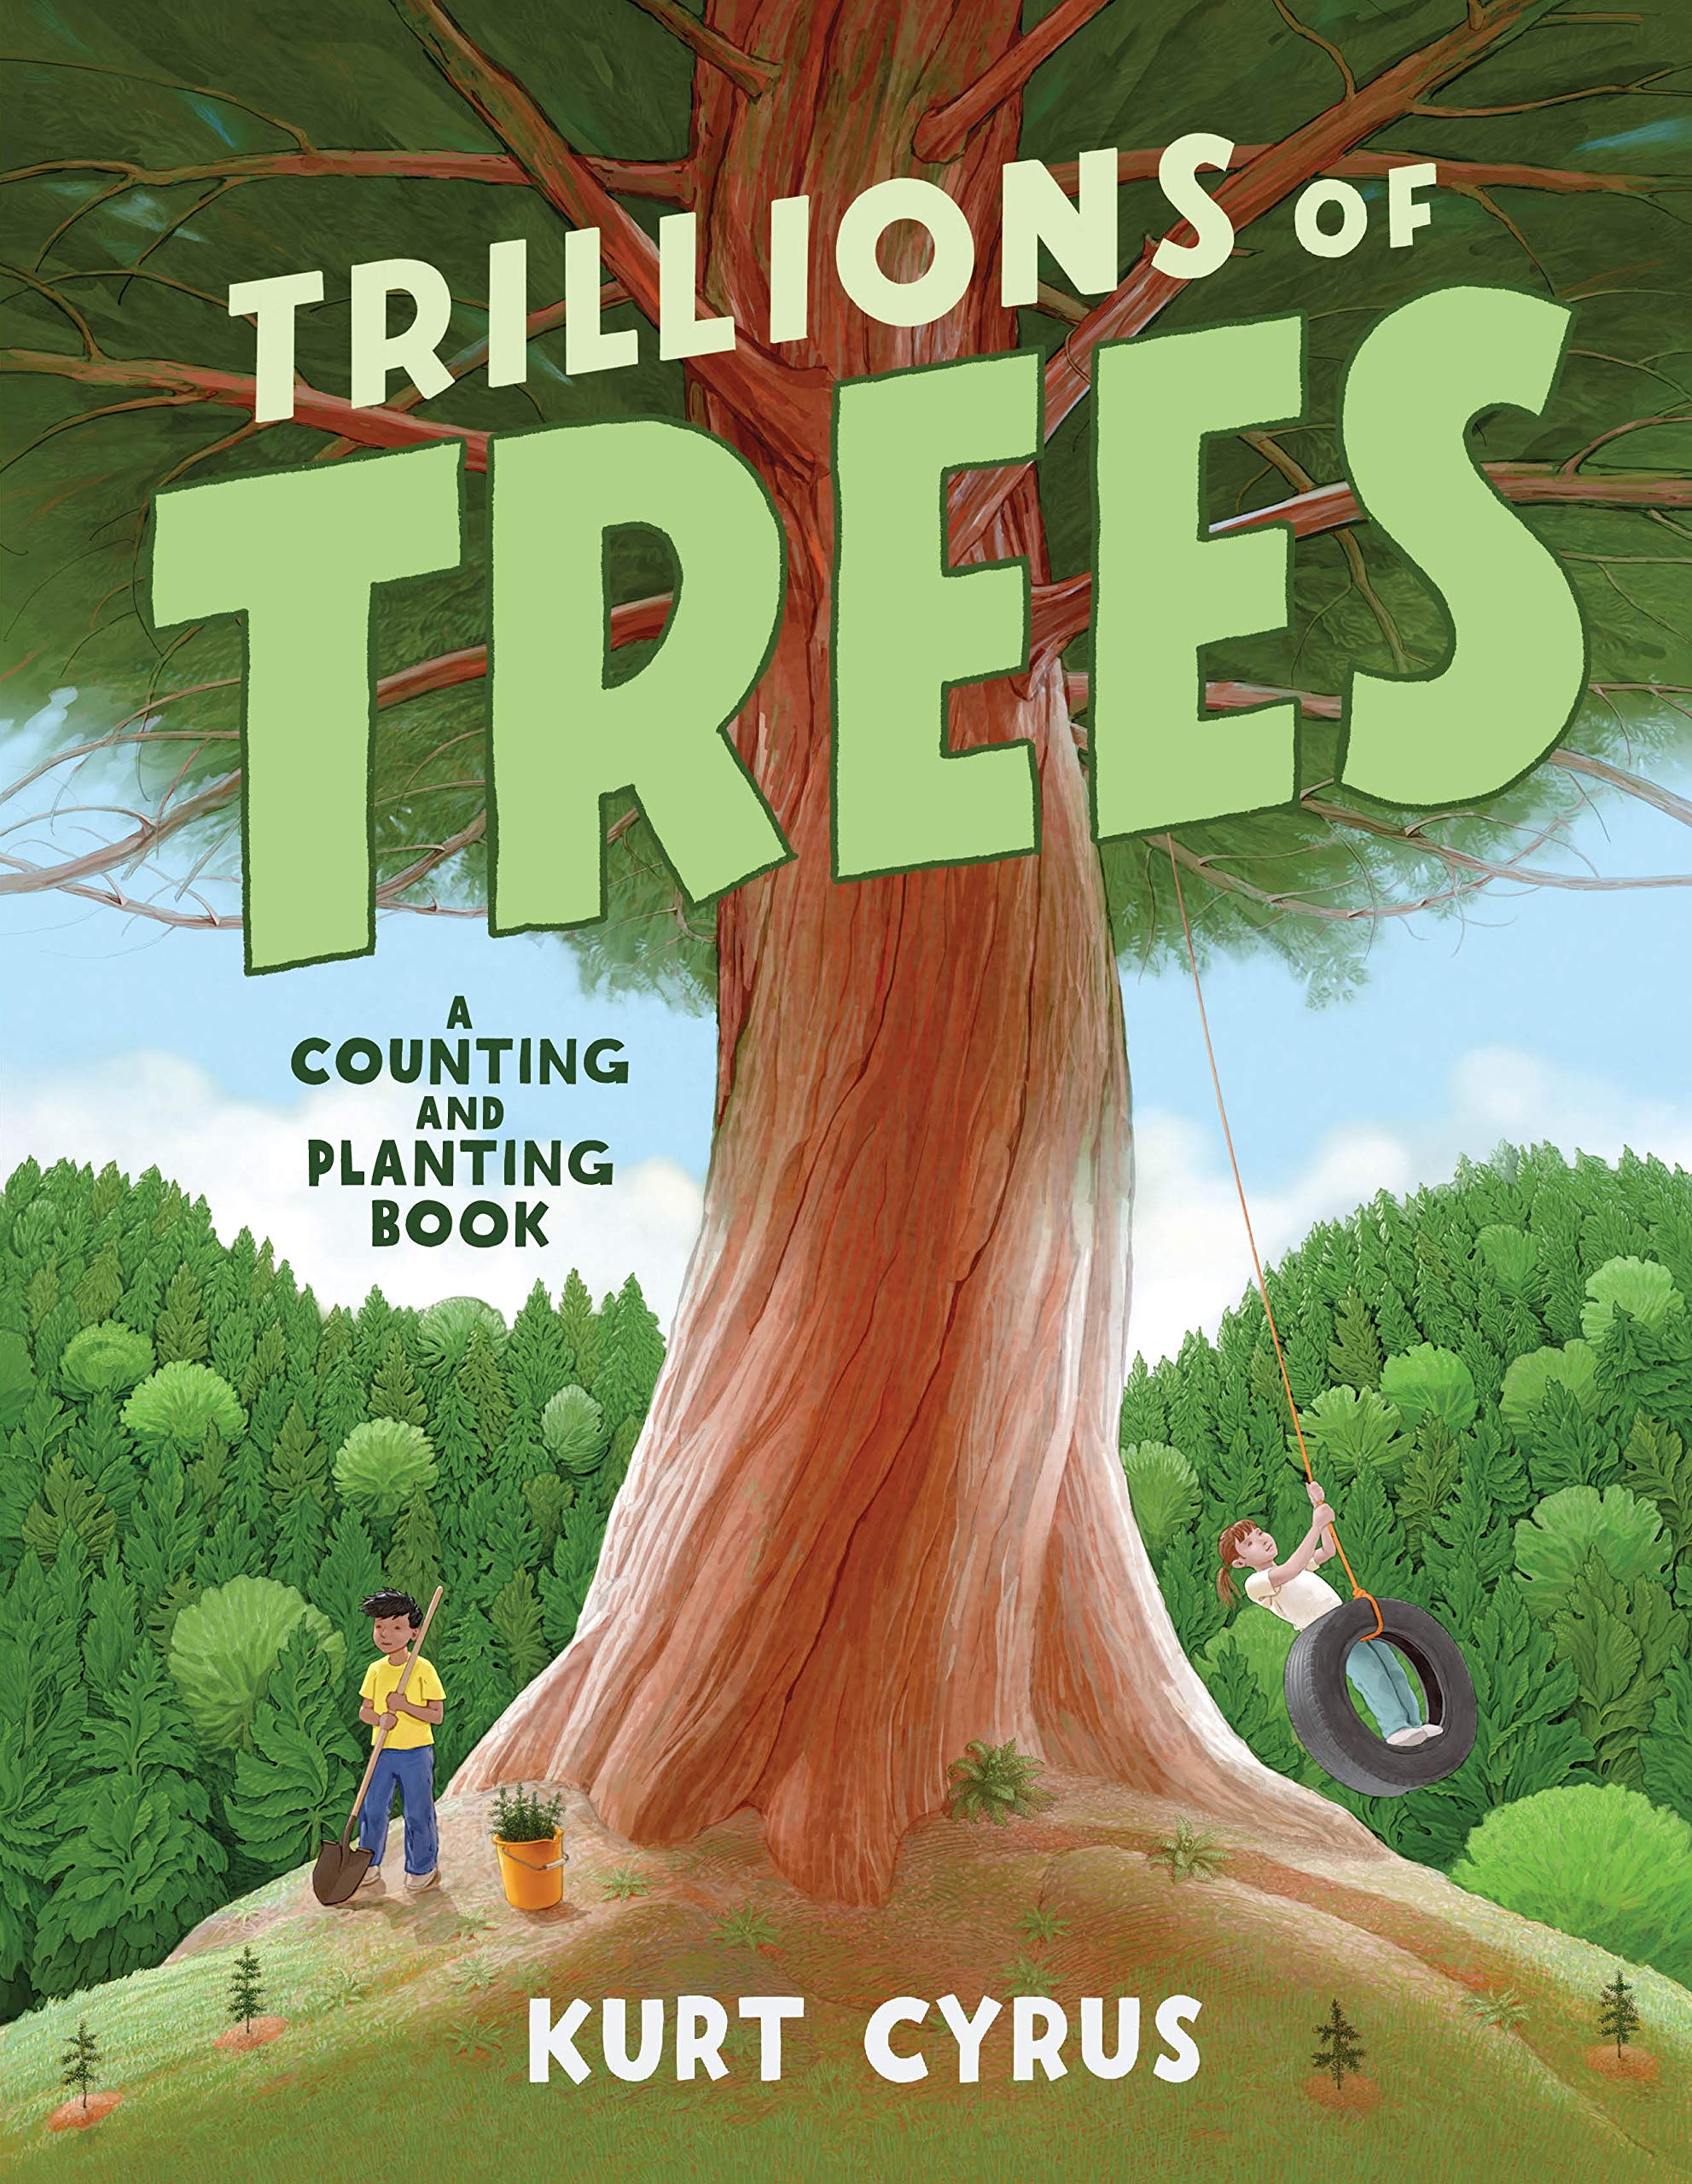 Trillions of Trees: A Counting and Planting Book: Cyrus, Kurt, Cyrus, Kurt:  9781250229076: Amazon.com: Books